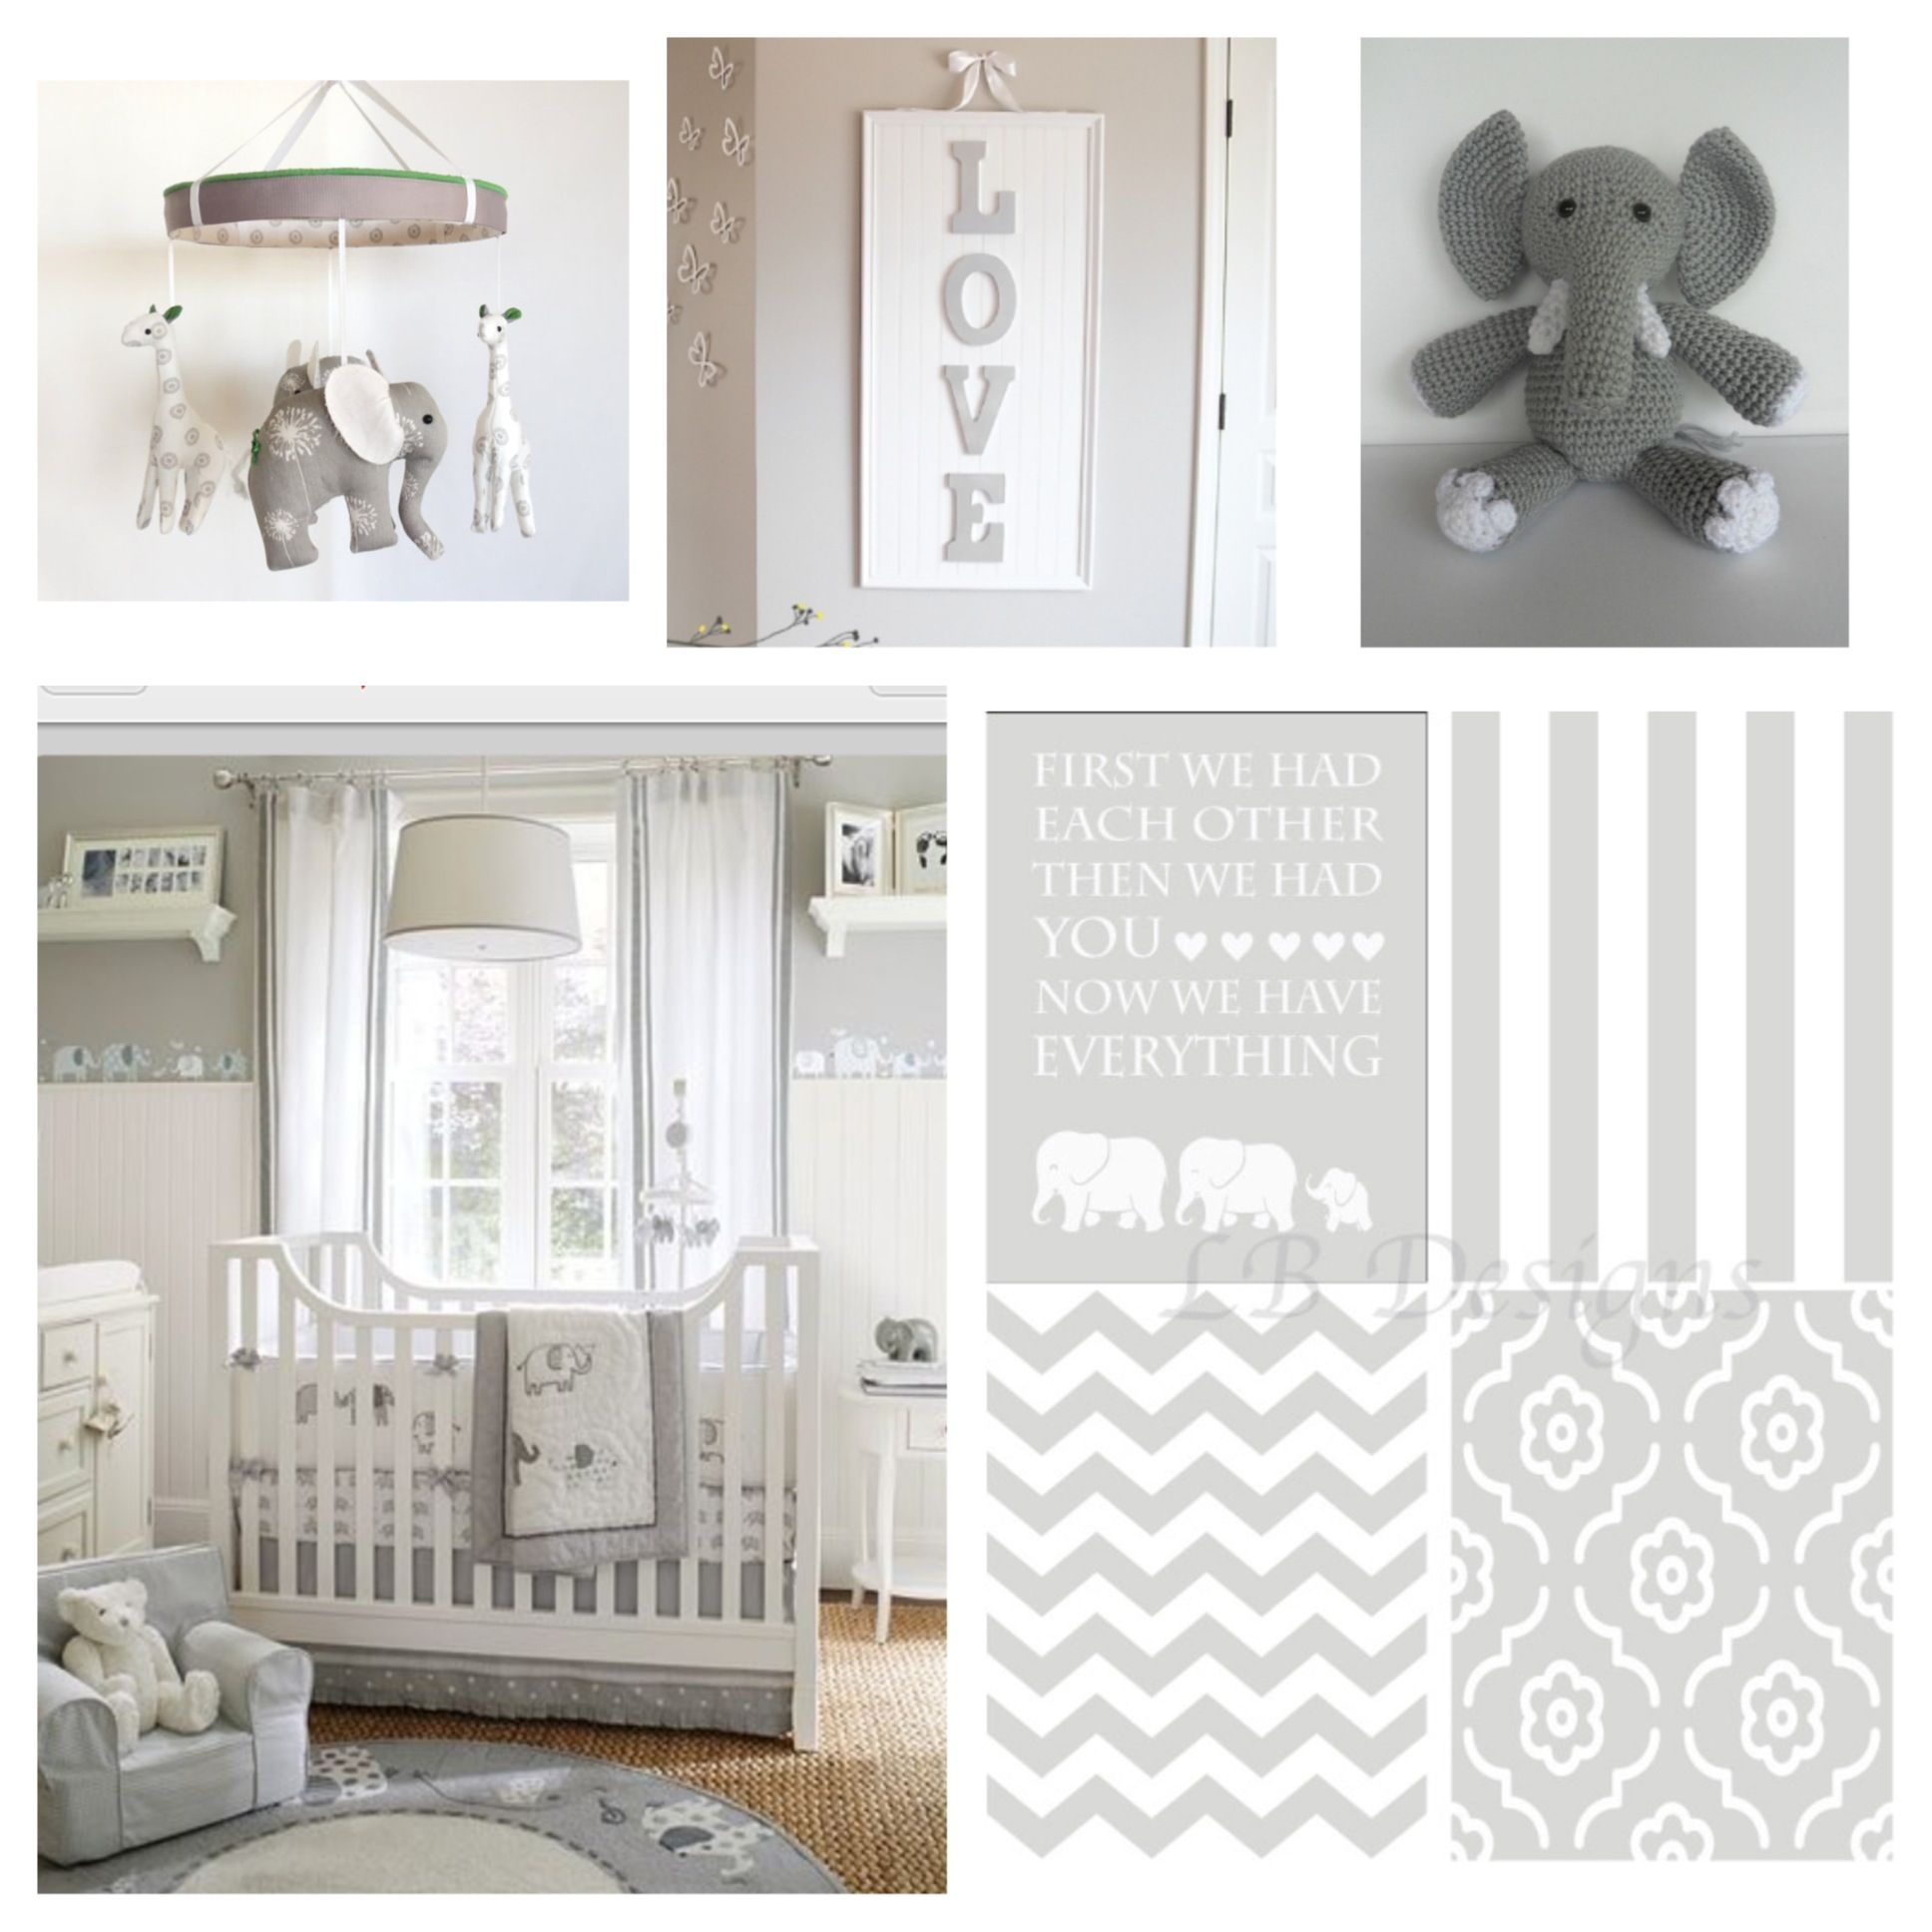 Grey and white baby room ideas - Gender Neutral Gray And White Elephant Nursery Nursery Prints From Www Etsy